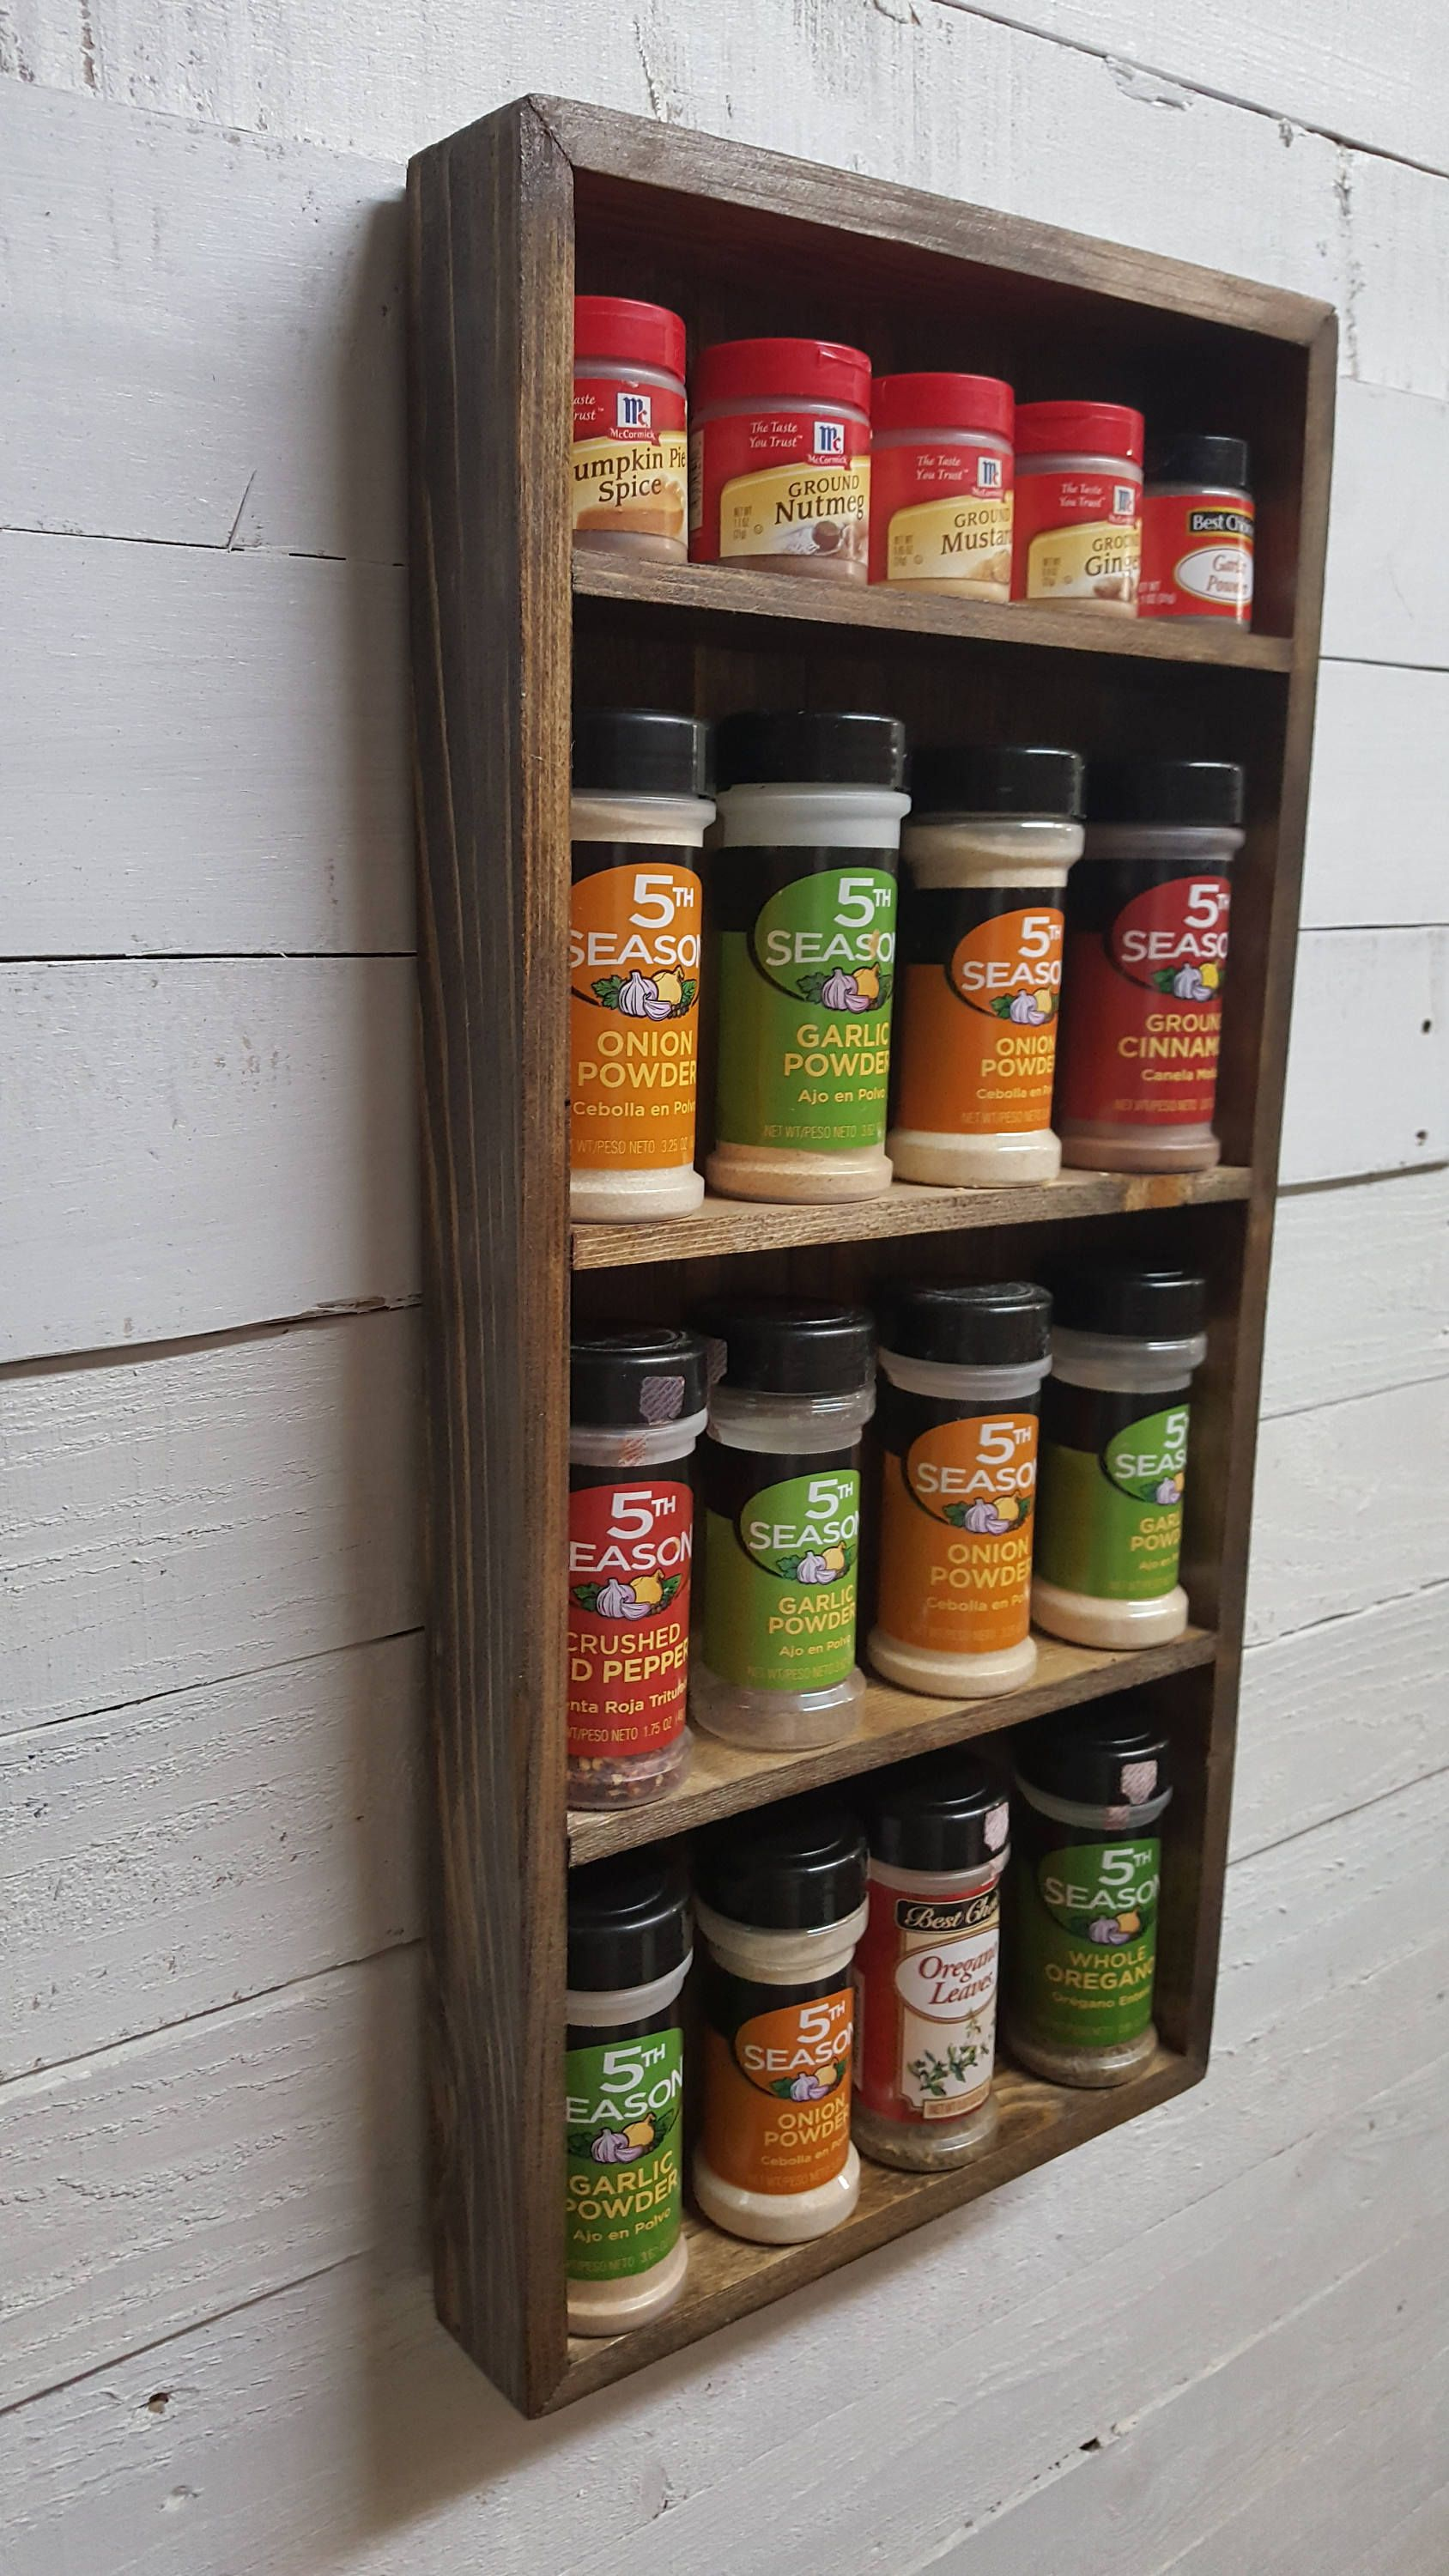 Wood Spice Rack For Wall Rustic Country Primitive Wood Wall Shelf Kitchen Spice Rack